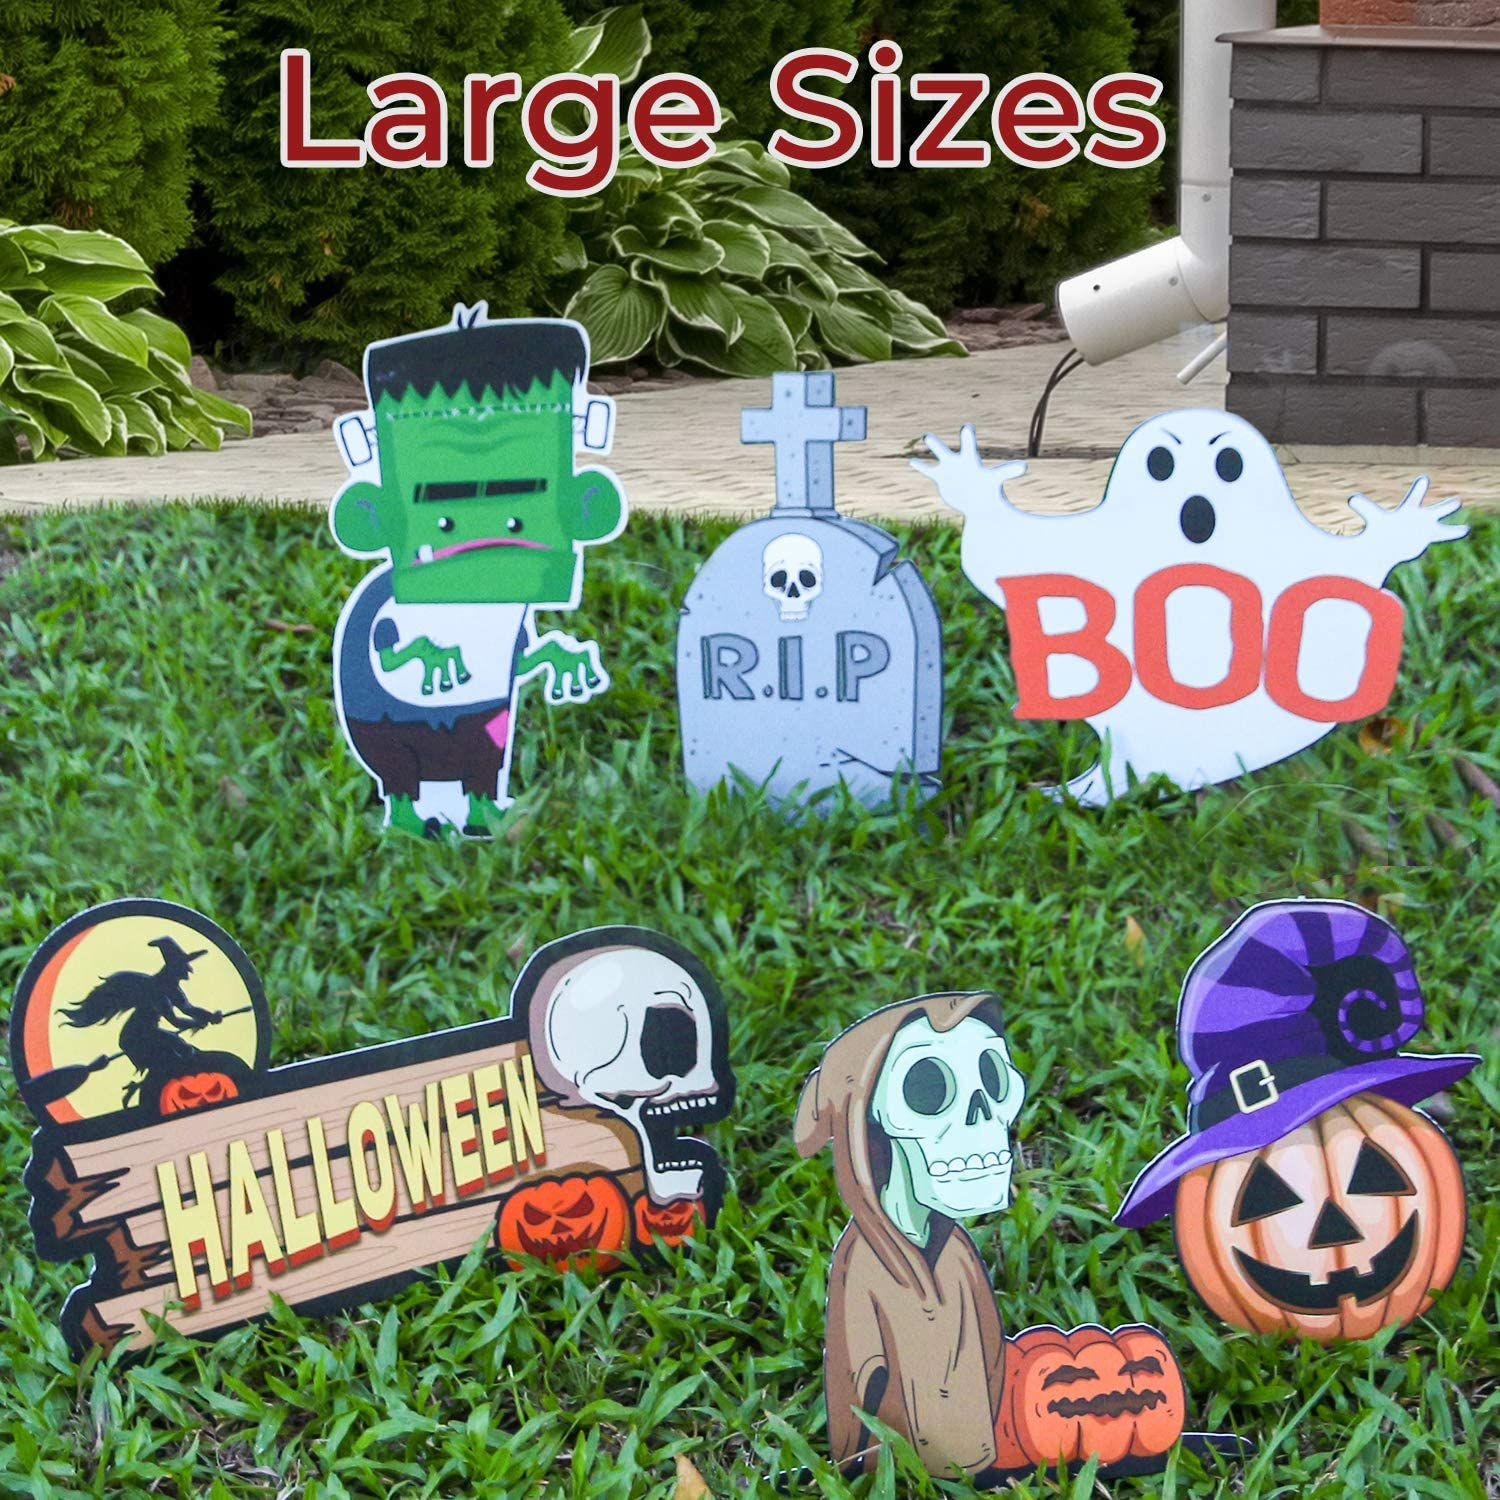 Halloween Yard Sign Eye-catching Halloween Yard Decor Kids-friendly Designs of Skull Ghost Pumpkin Monster Large Size Scary Halloween Decorations in Entrances / Backyards / Lawns / Interiors (6pcs)